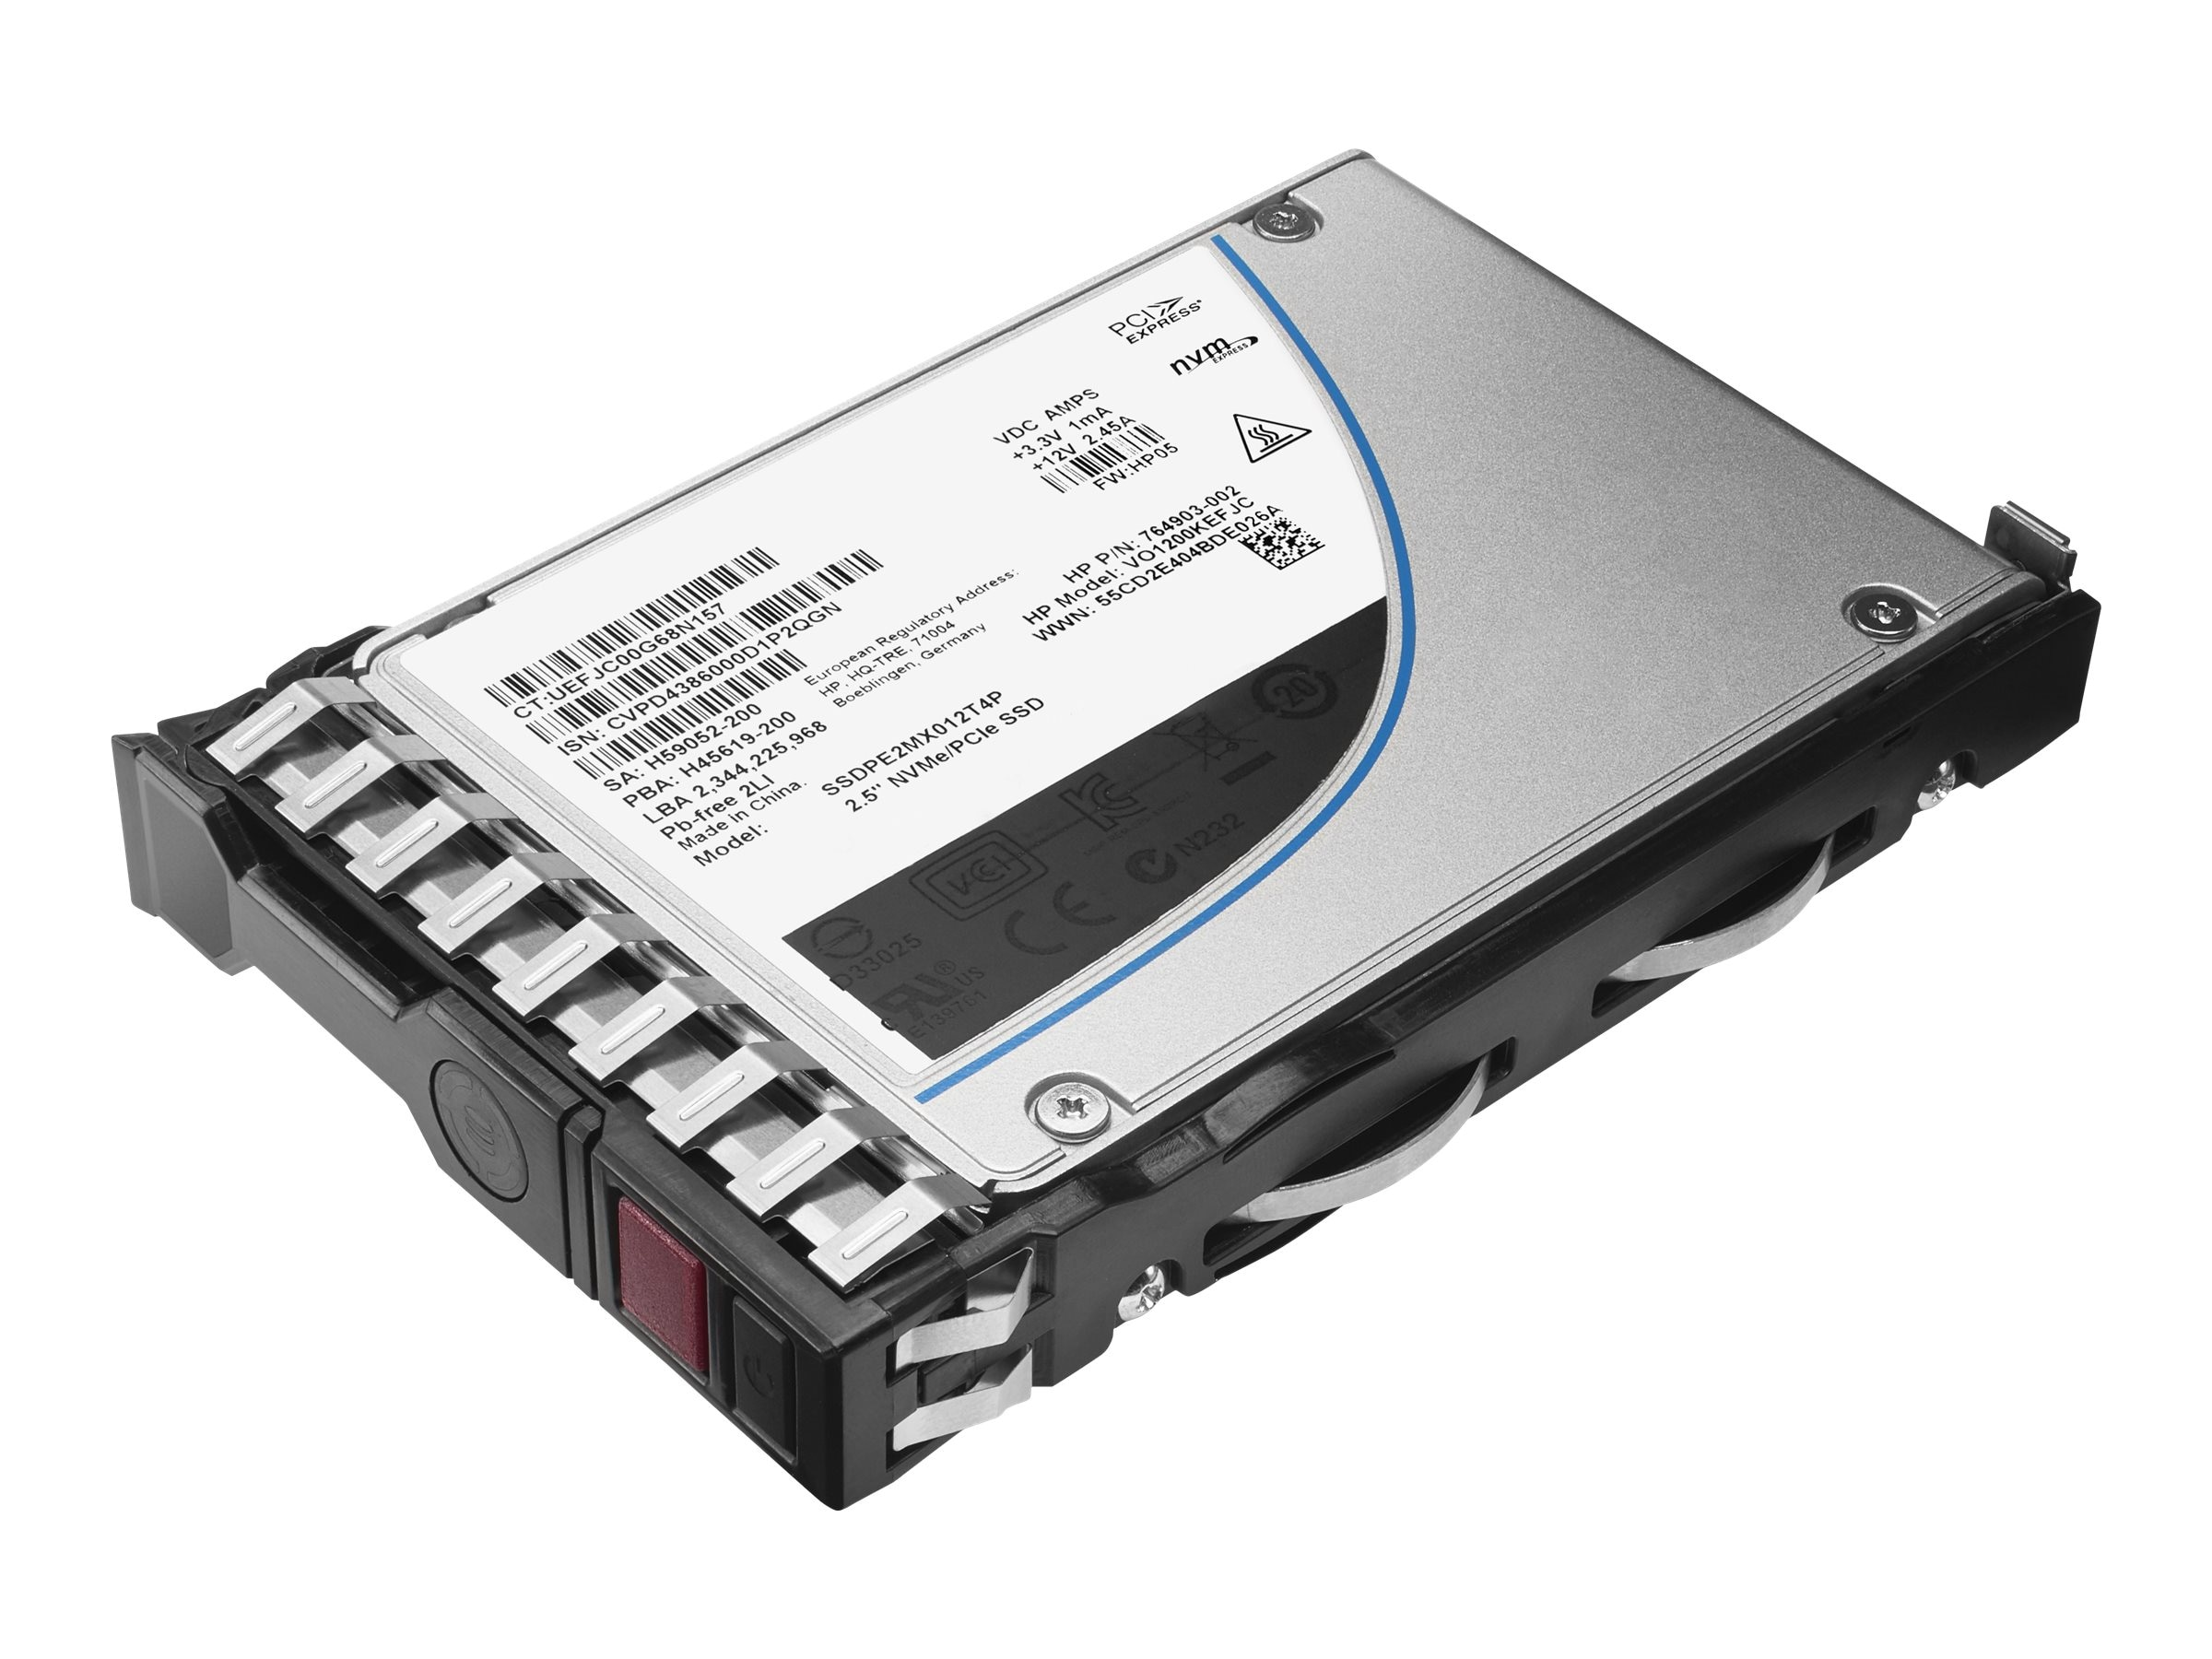 HPE 100GB SATA 3Gb s MLC LFF 3.5 Server Class Enterprise Mainstream Solid State Drive